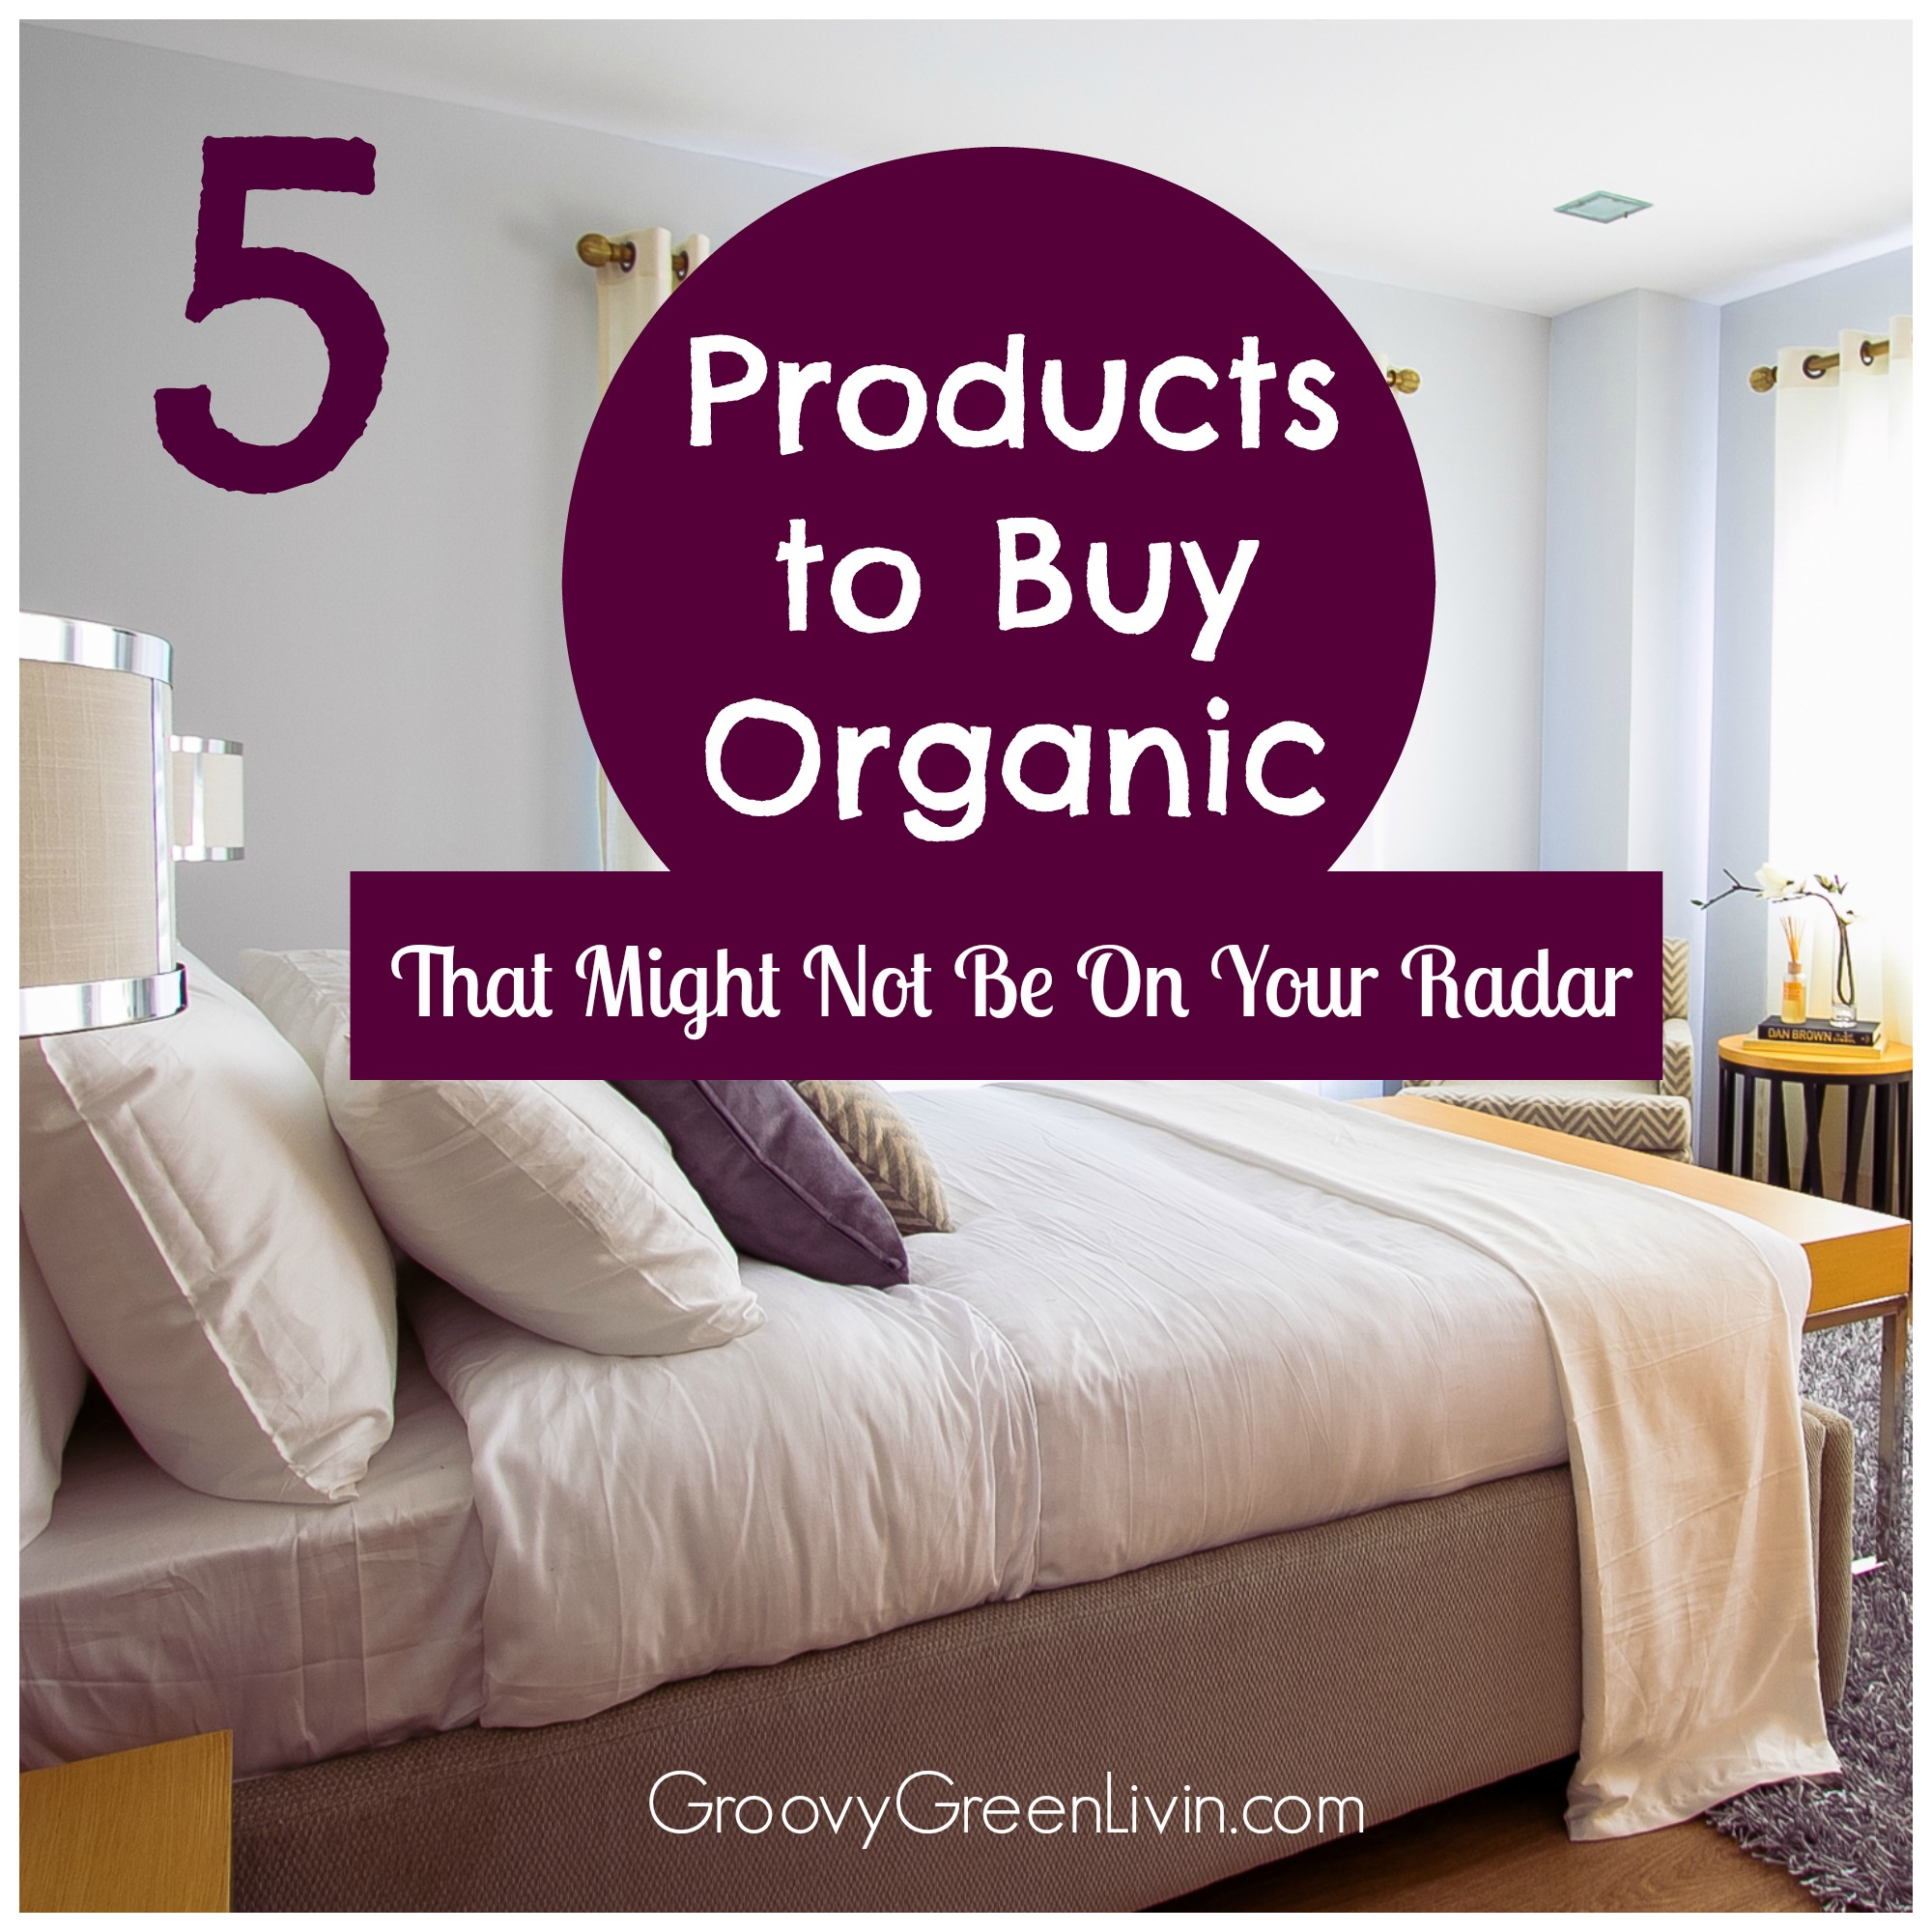 5 Products to Buy Organic That Might Not Be On Your Radar